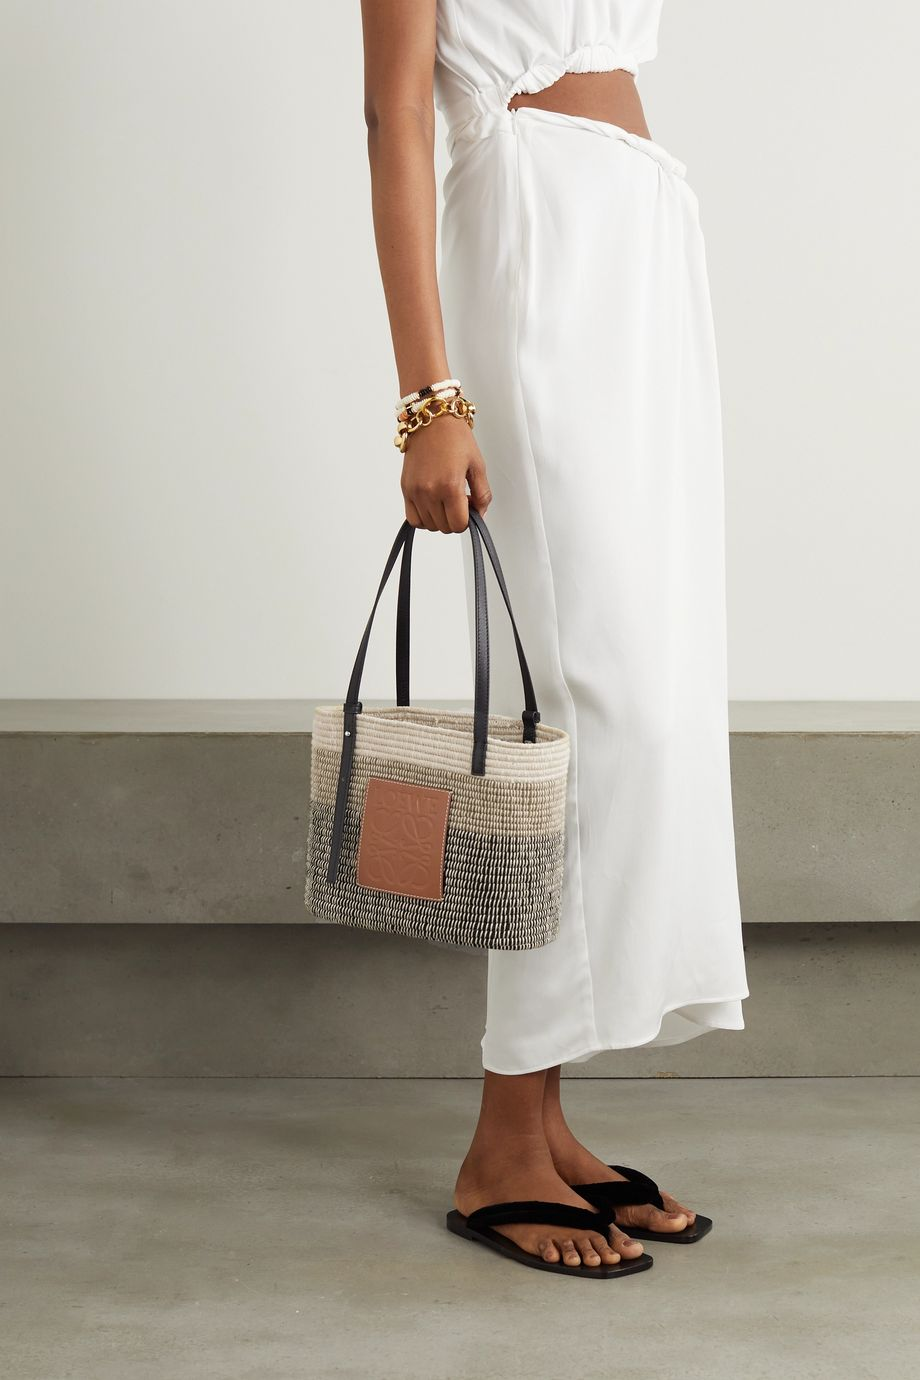 Loewe Square Basket leather-trimmed woven tote